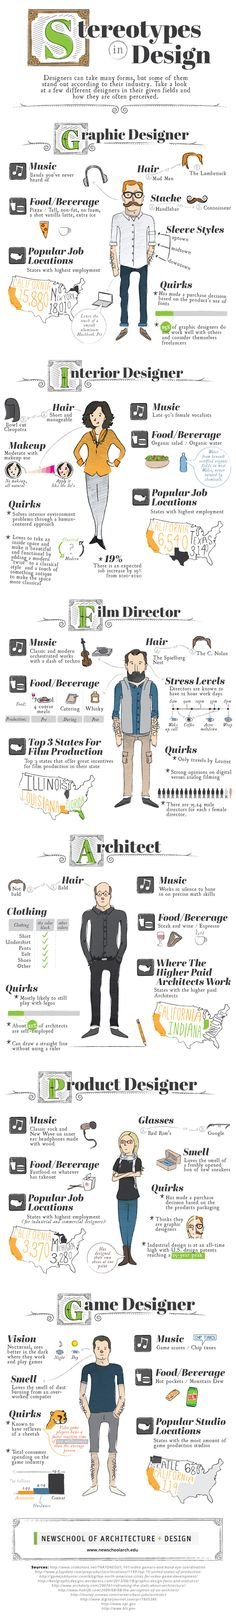 Design Stereotypes. Do Any Of These Come To Mind When You Think About Certain Kinds Of Designers?